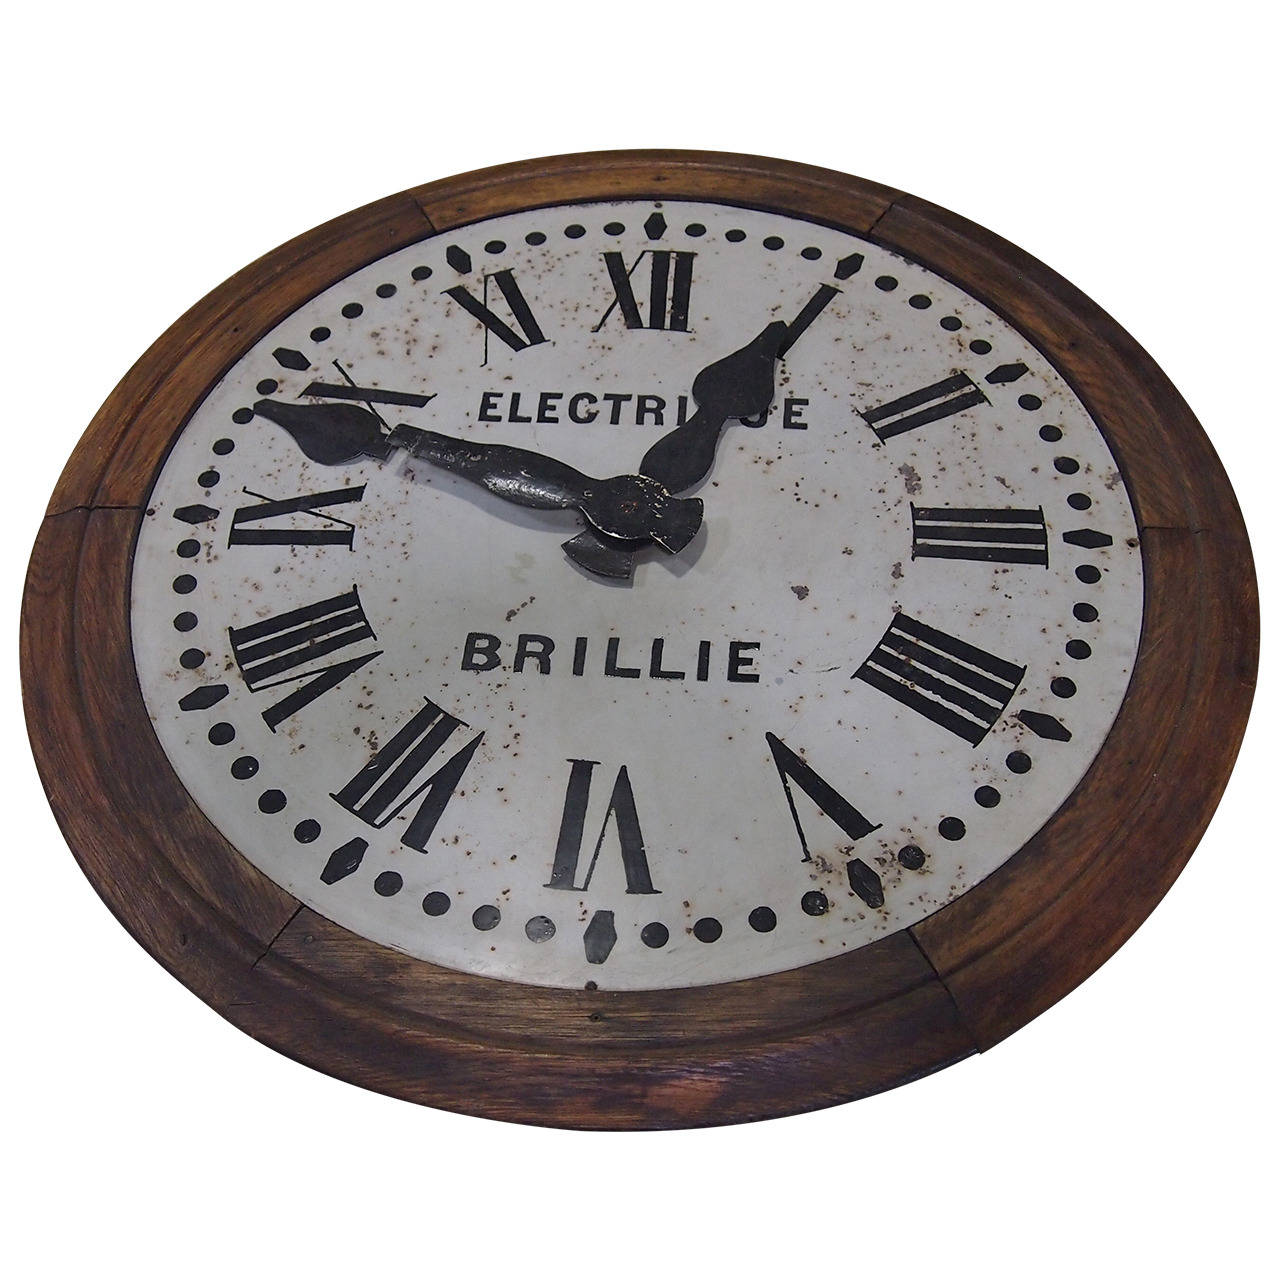 1930's French Brillie Walnut Railroad Station Clock For Sale